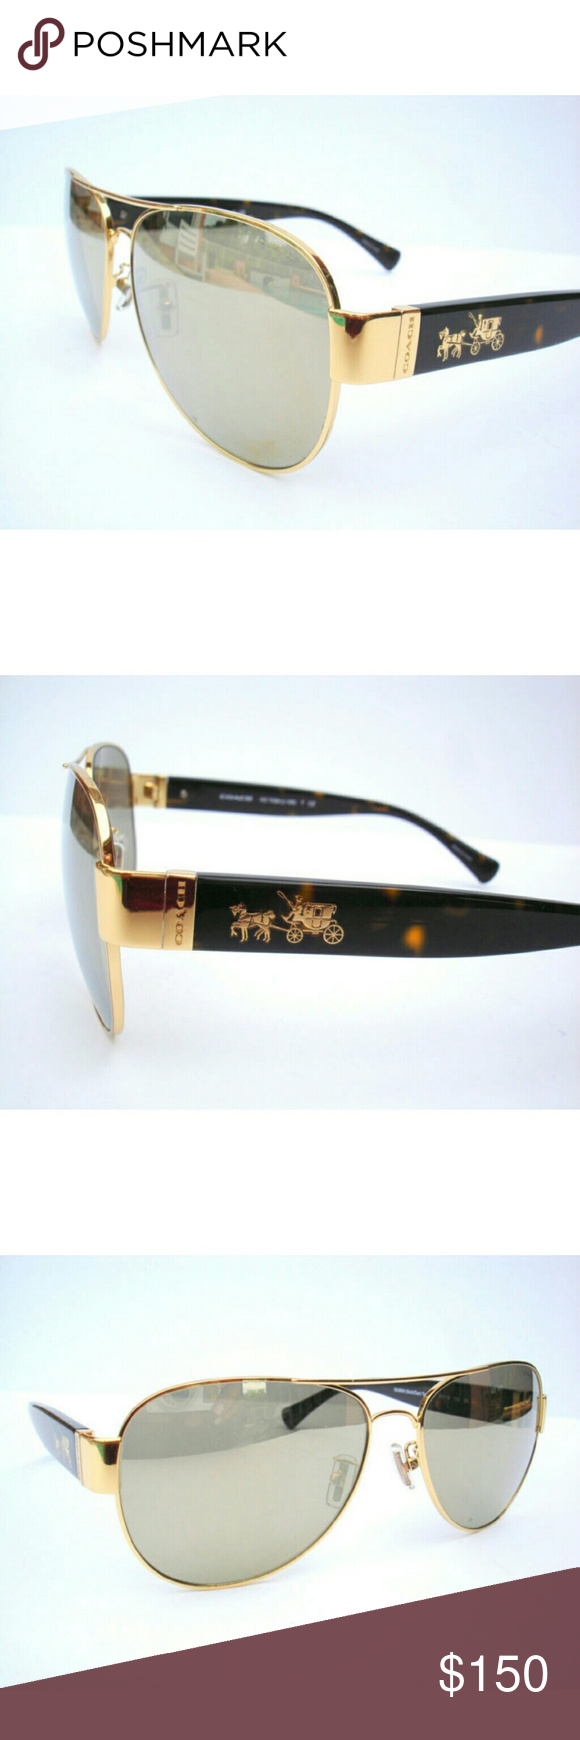 Coach Sunglasses Authentic Coach Sunglasses  Gold frame with gold mirror lenses  These were store display  Excellent condition  Original case included Coach Accessories Sunglasses